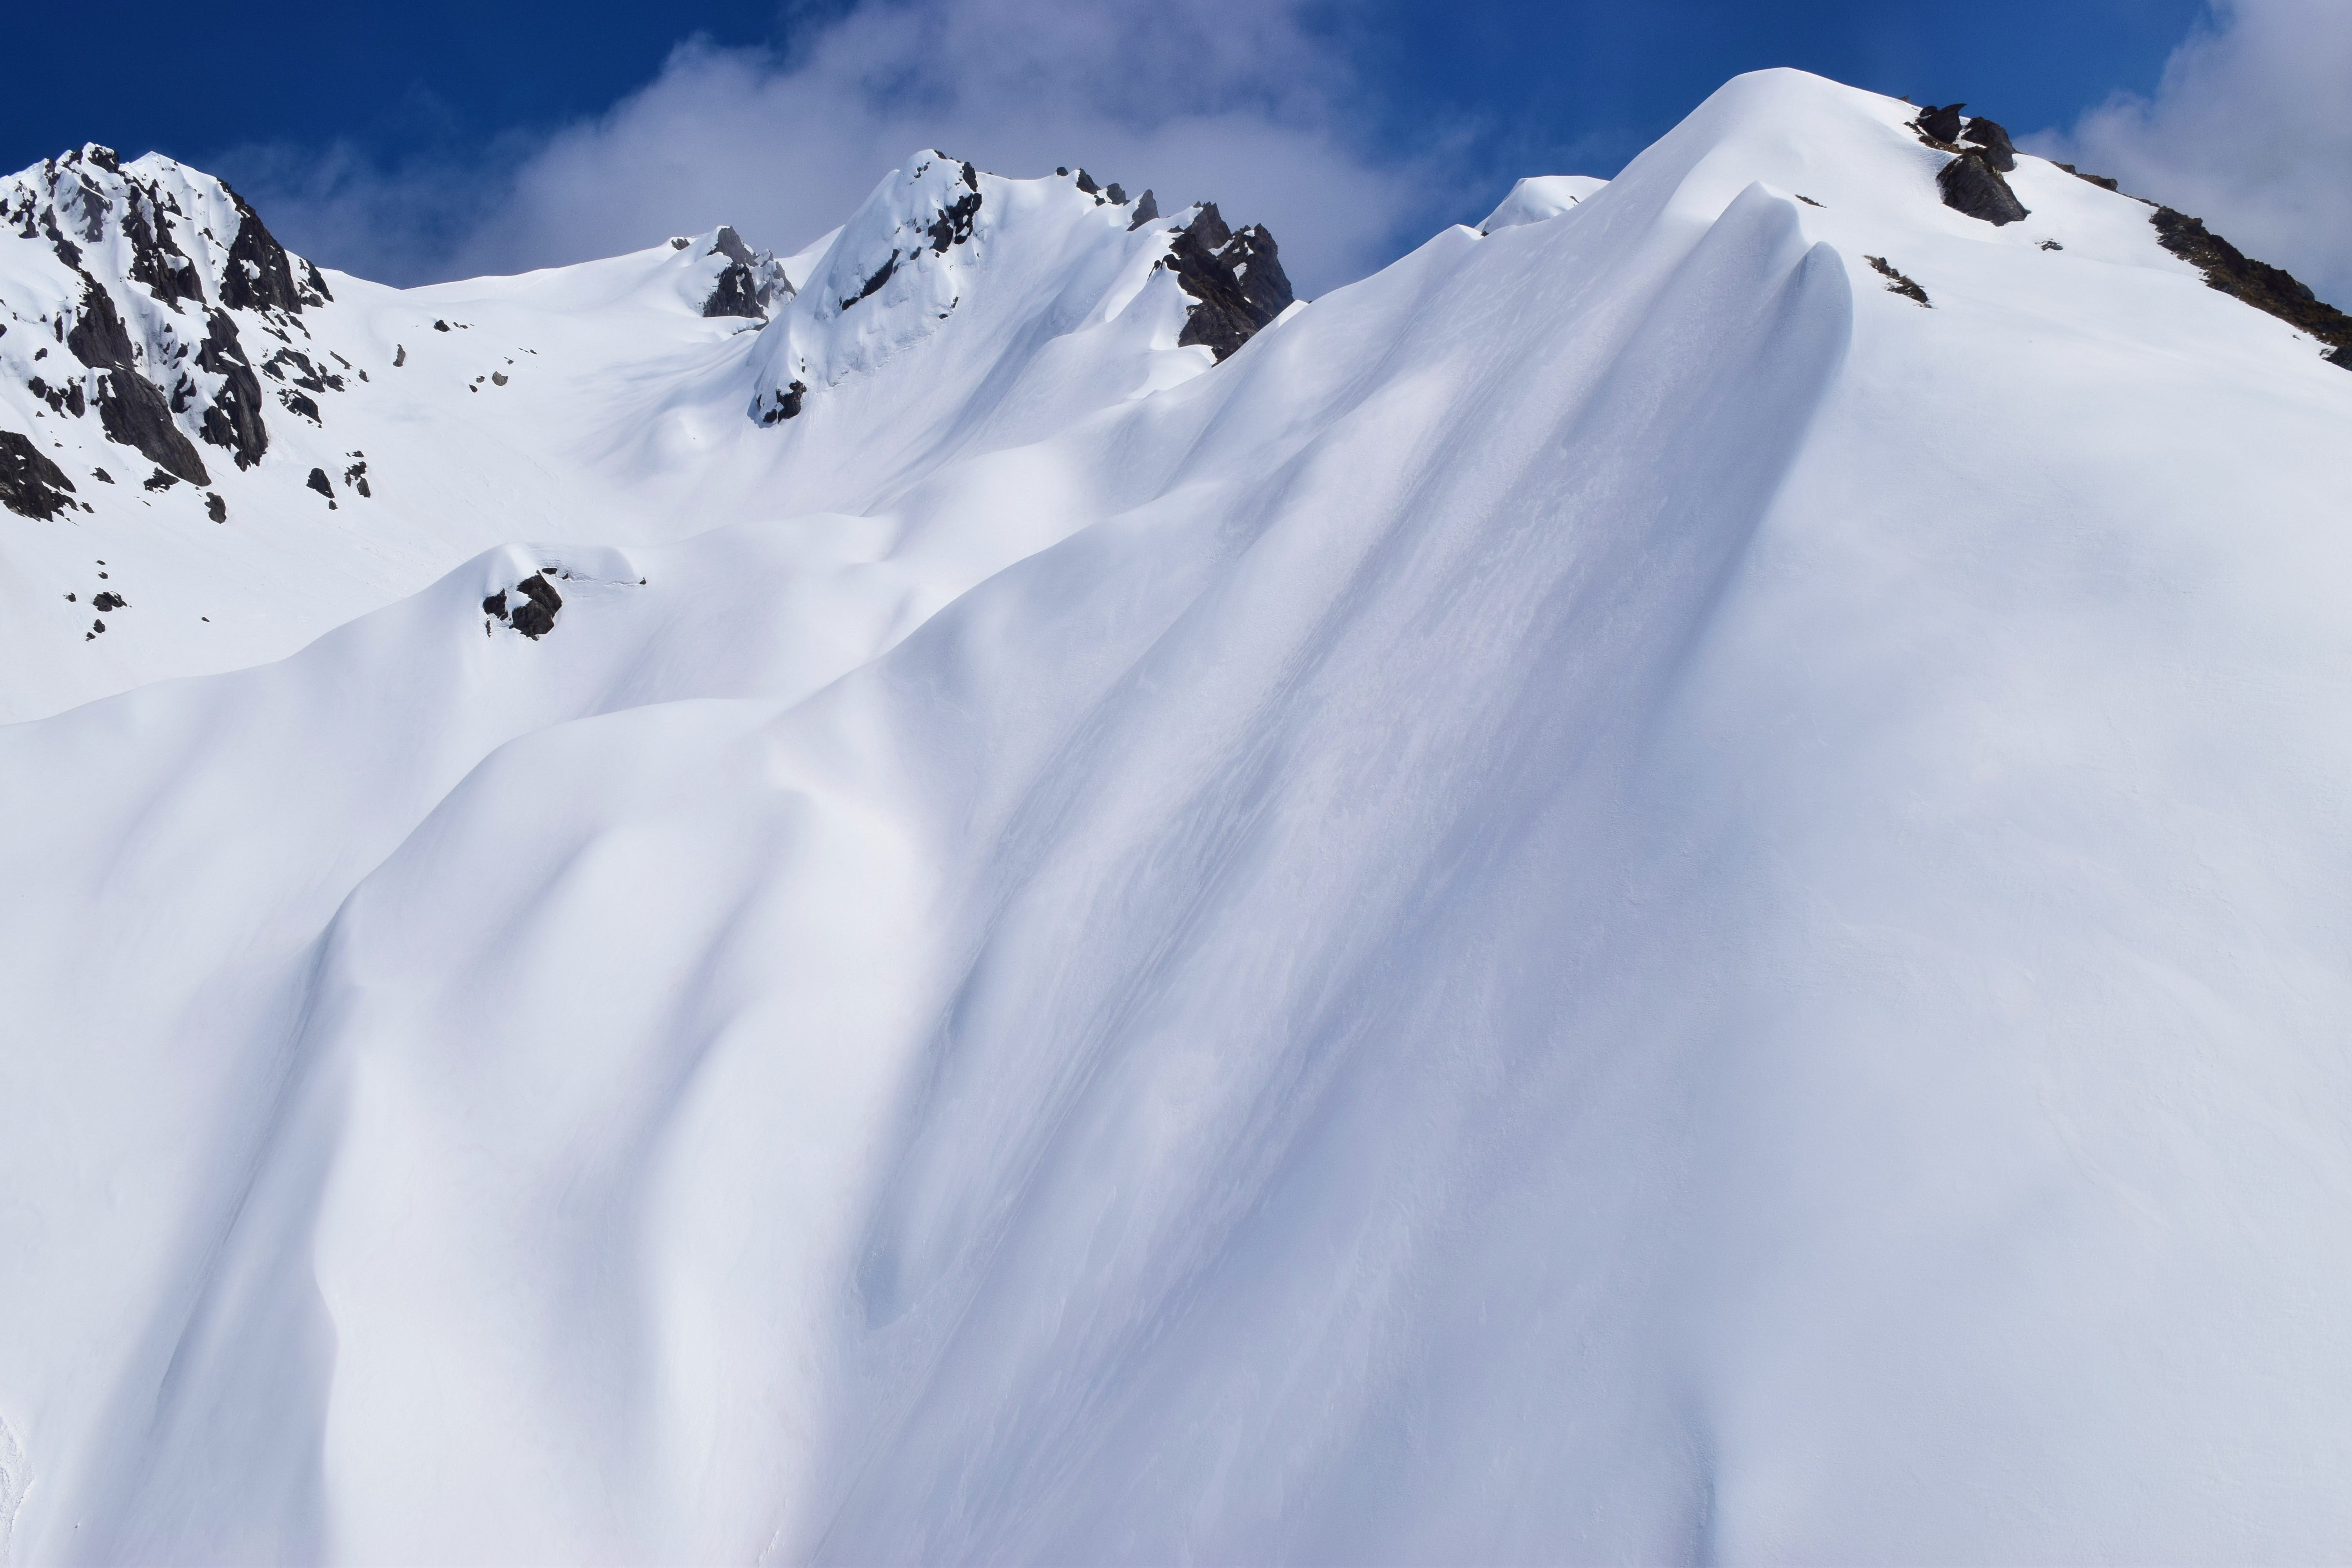 Snow Cover Mountain Slope